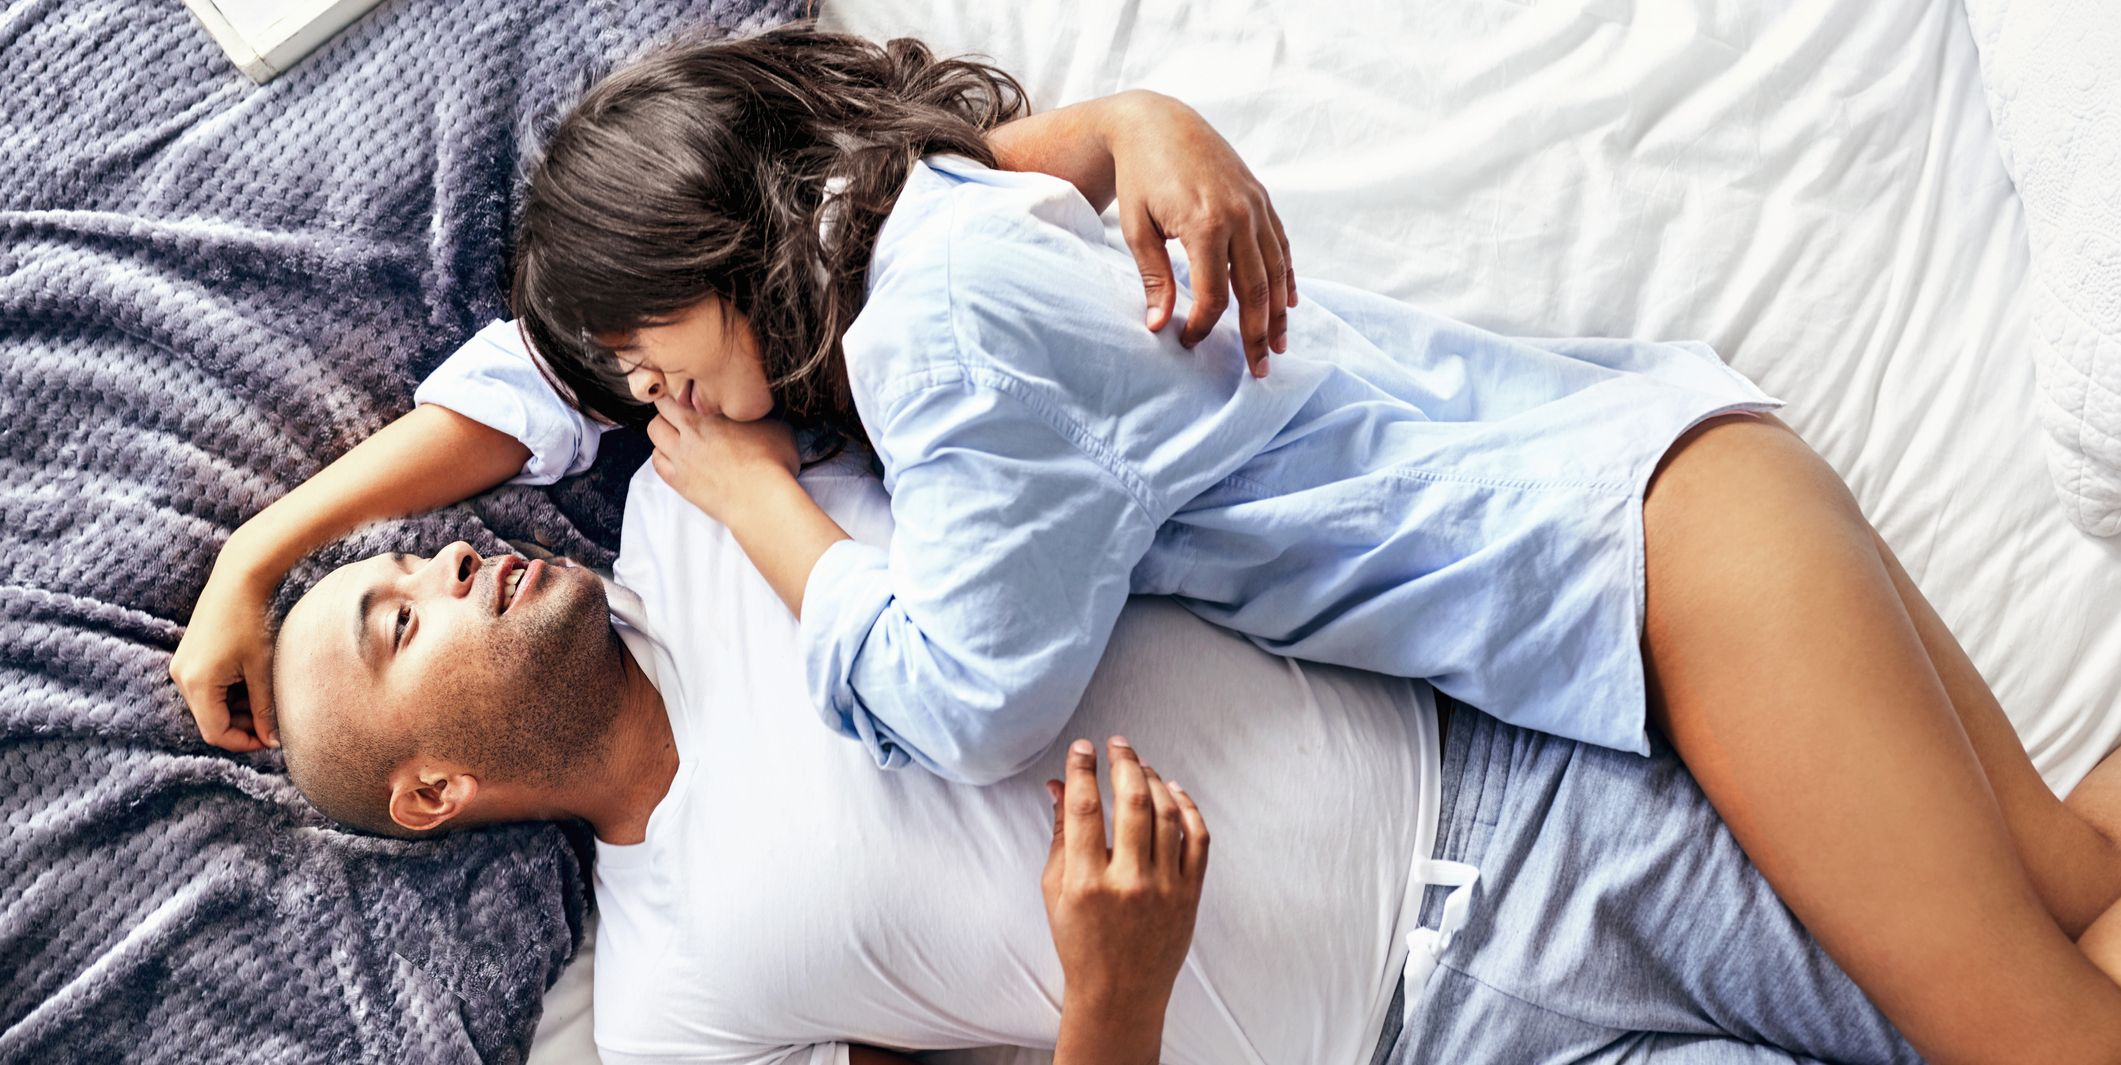 Overhead view sensual couple in pajamas cuddling on bed